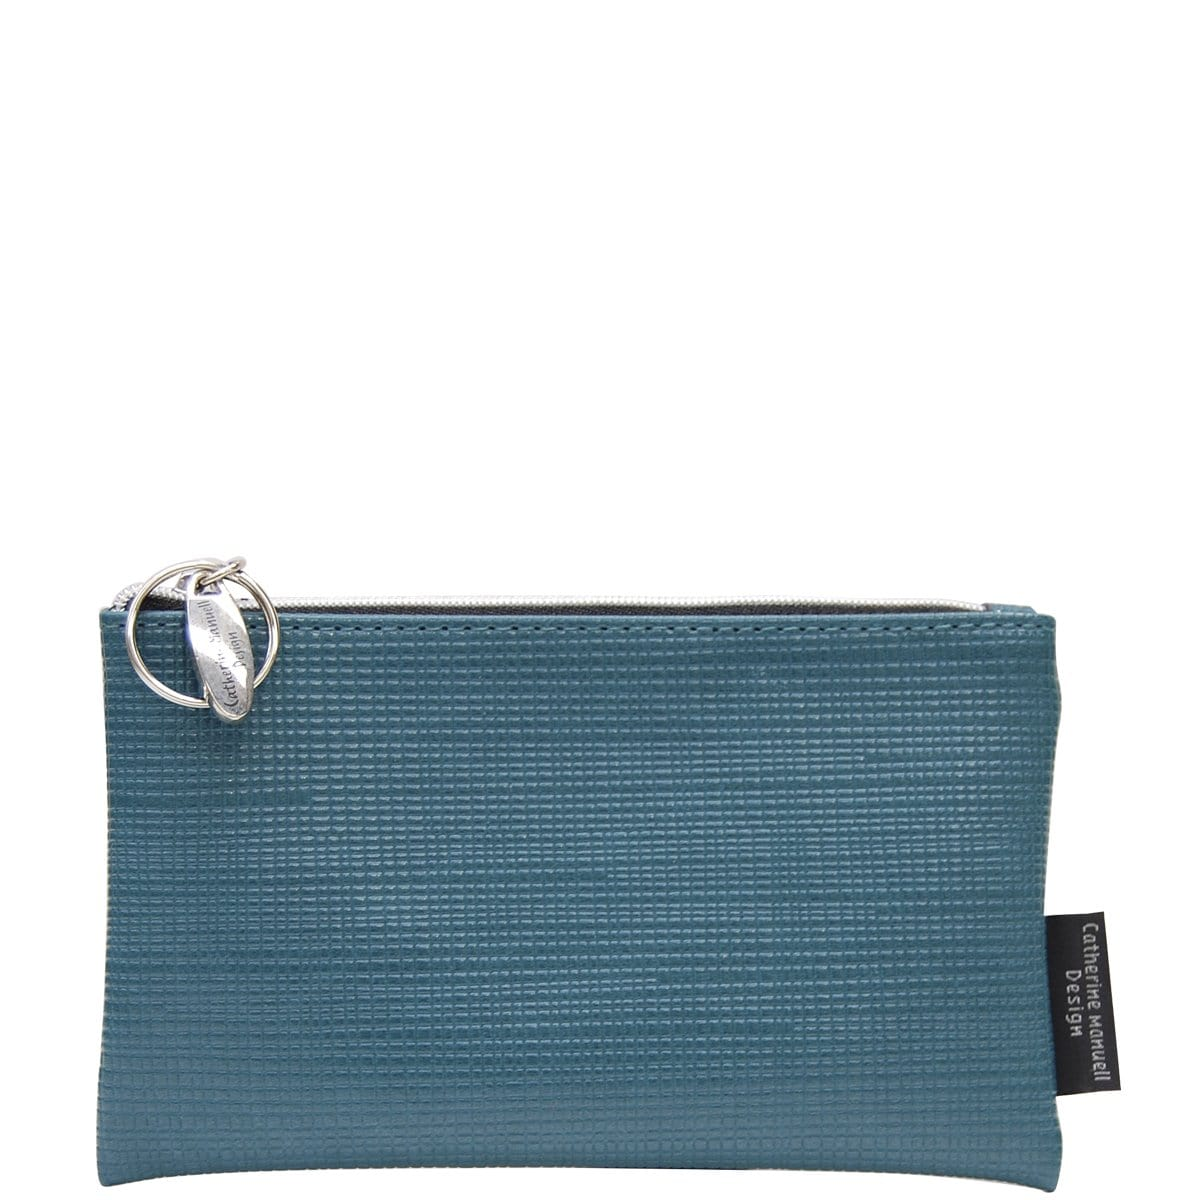 Medium Overflow Purse - Teal Criss Cross